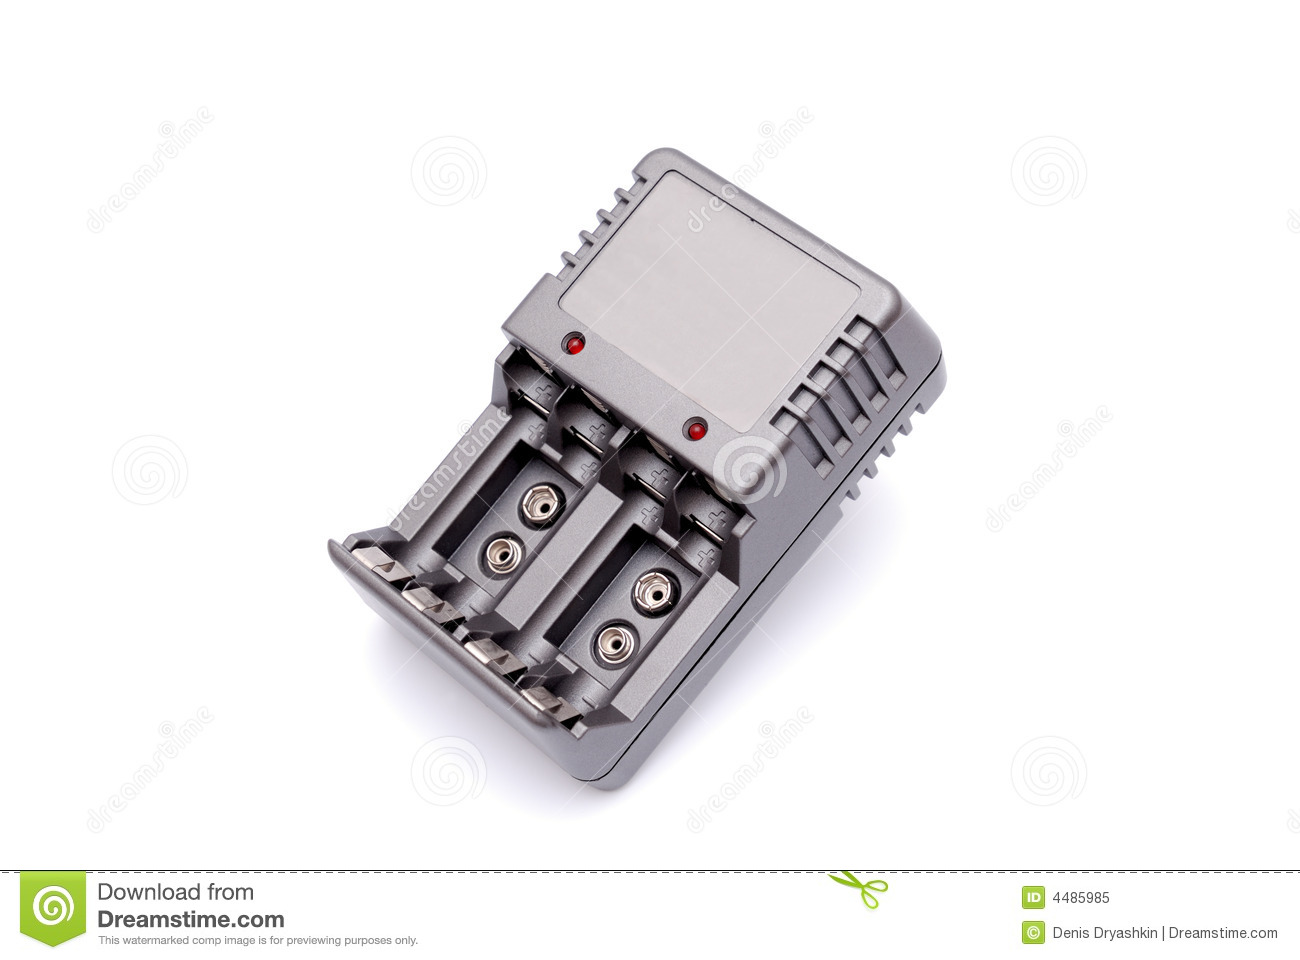 Accu Batterien Accu Battery Charger Rechargeable Stock Image Image Of